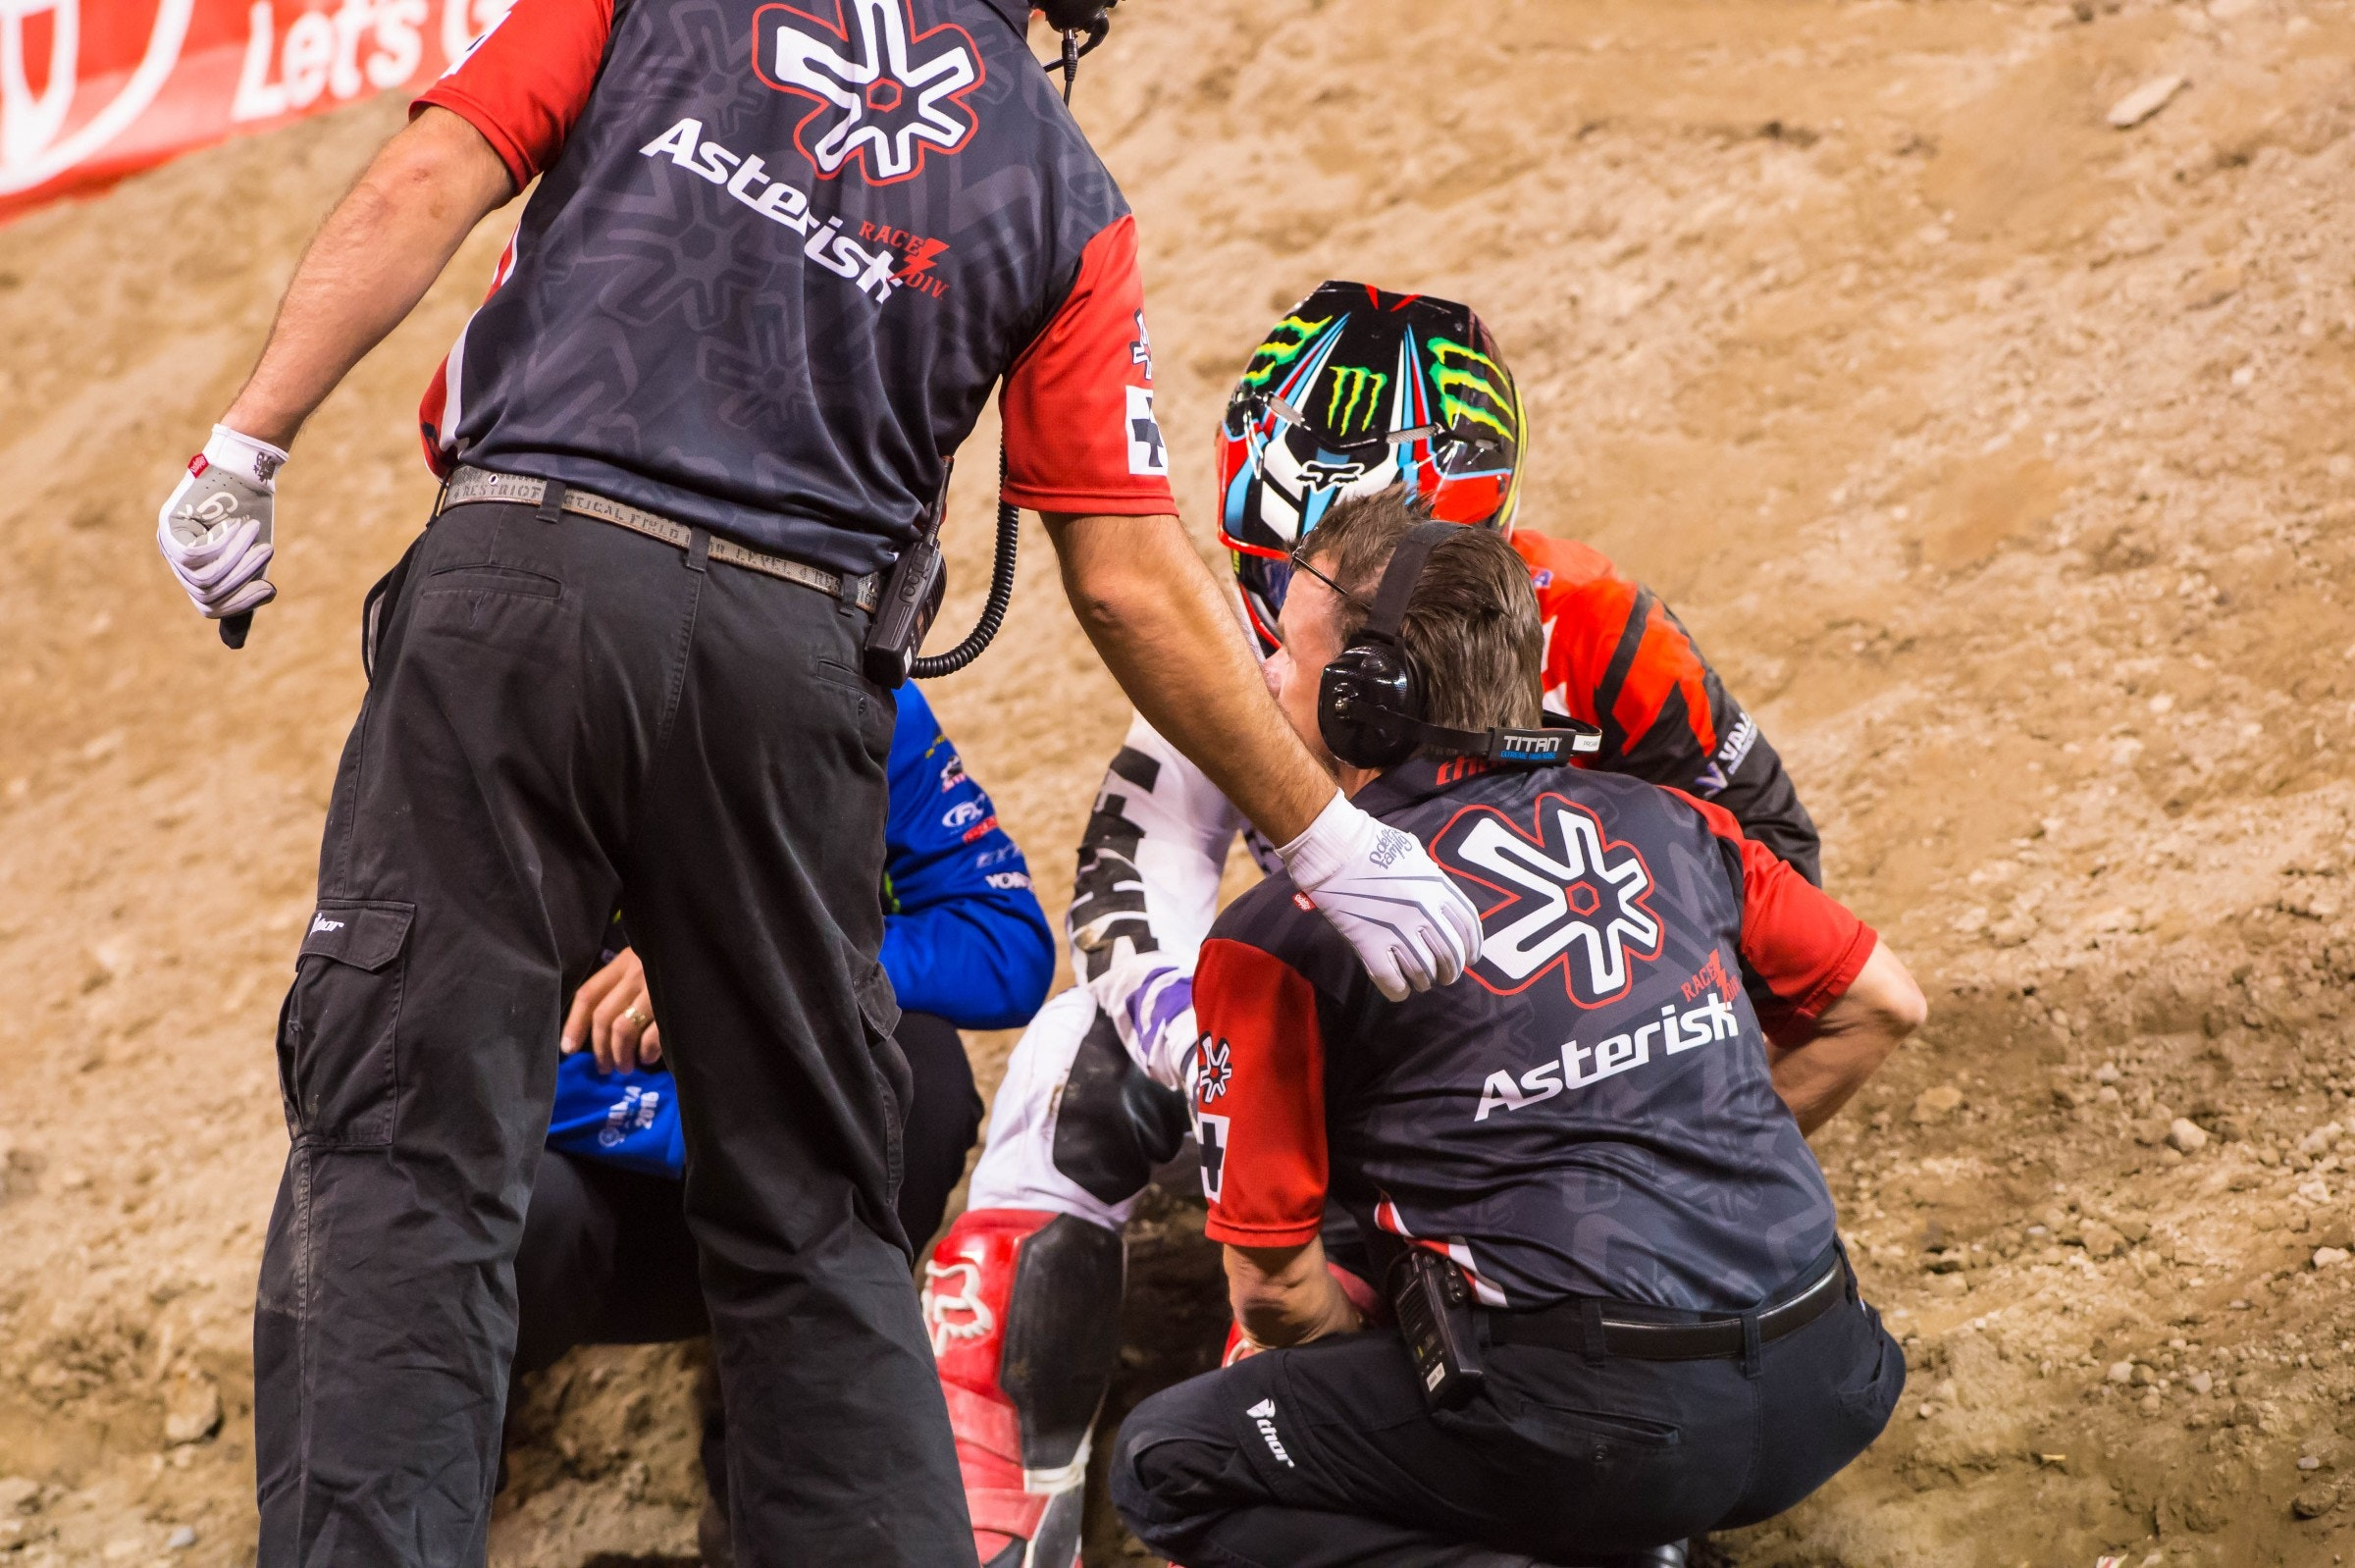 After a crash in the main event last weekend, Chad Reed is expected to race in Detroit.